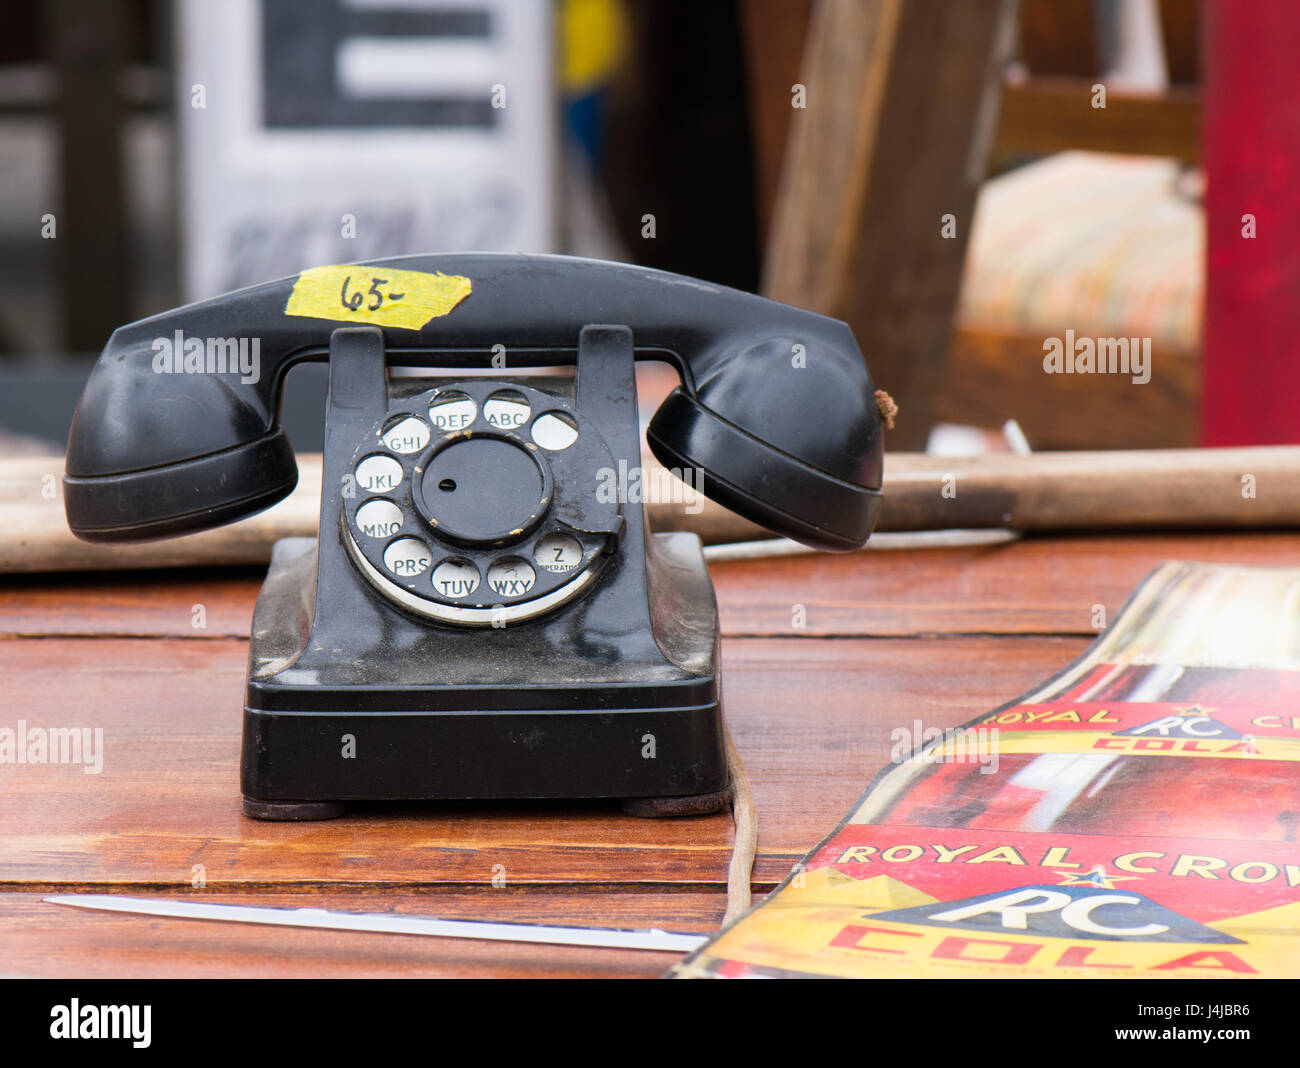 Old rotary telephone at antique market. - Stock Image